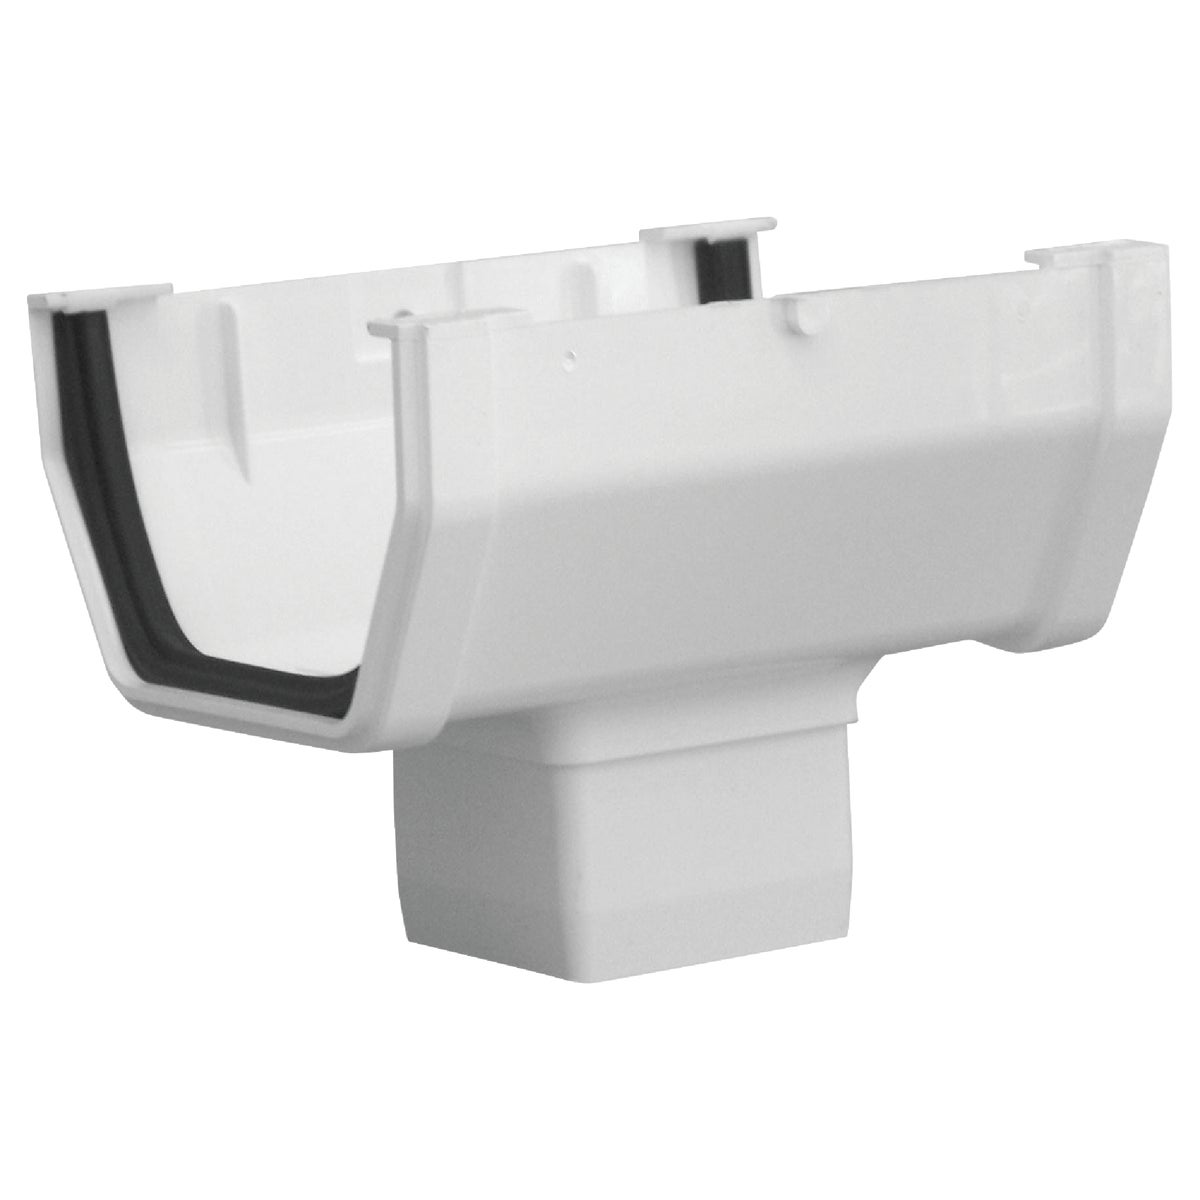 WHT GUTTER DROP OUTLET - RW104 by Genova Products